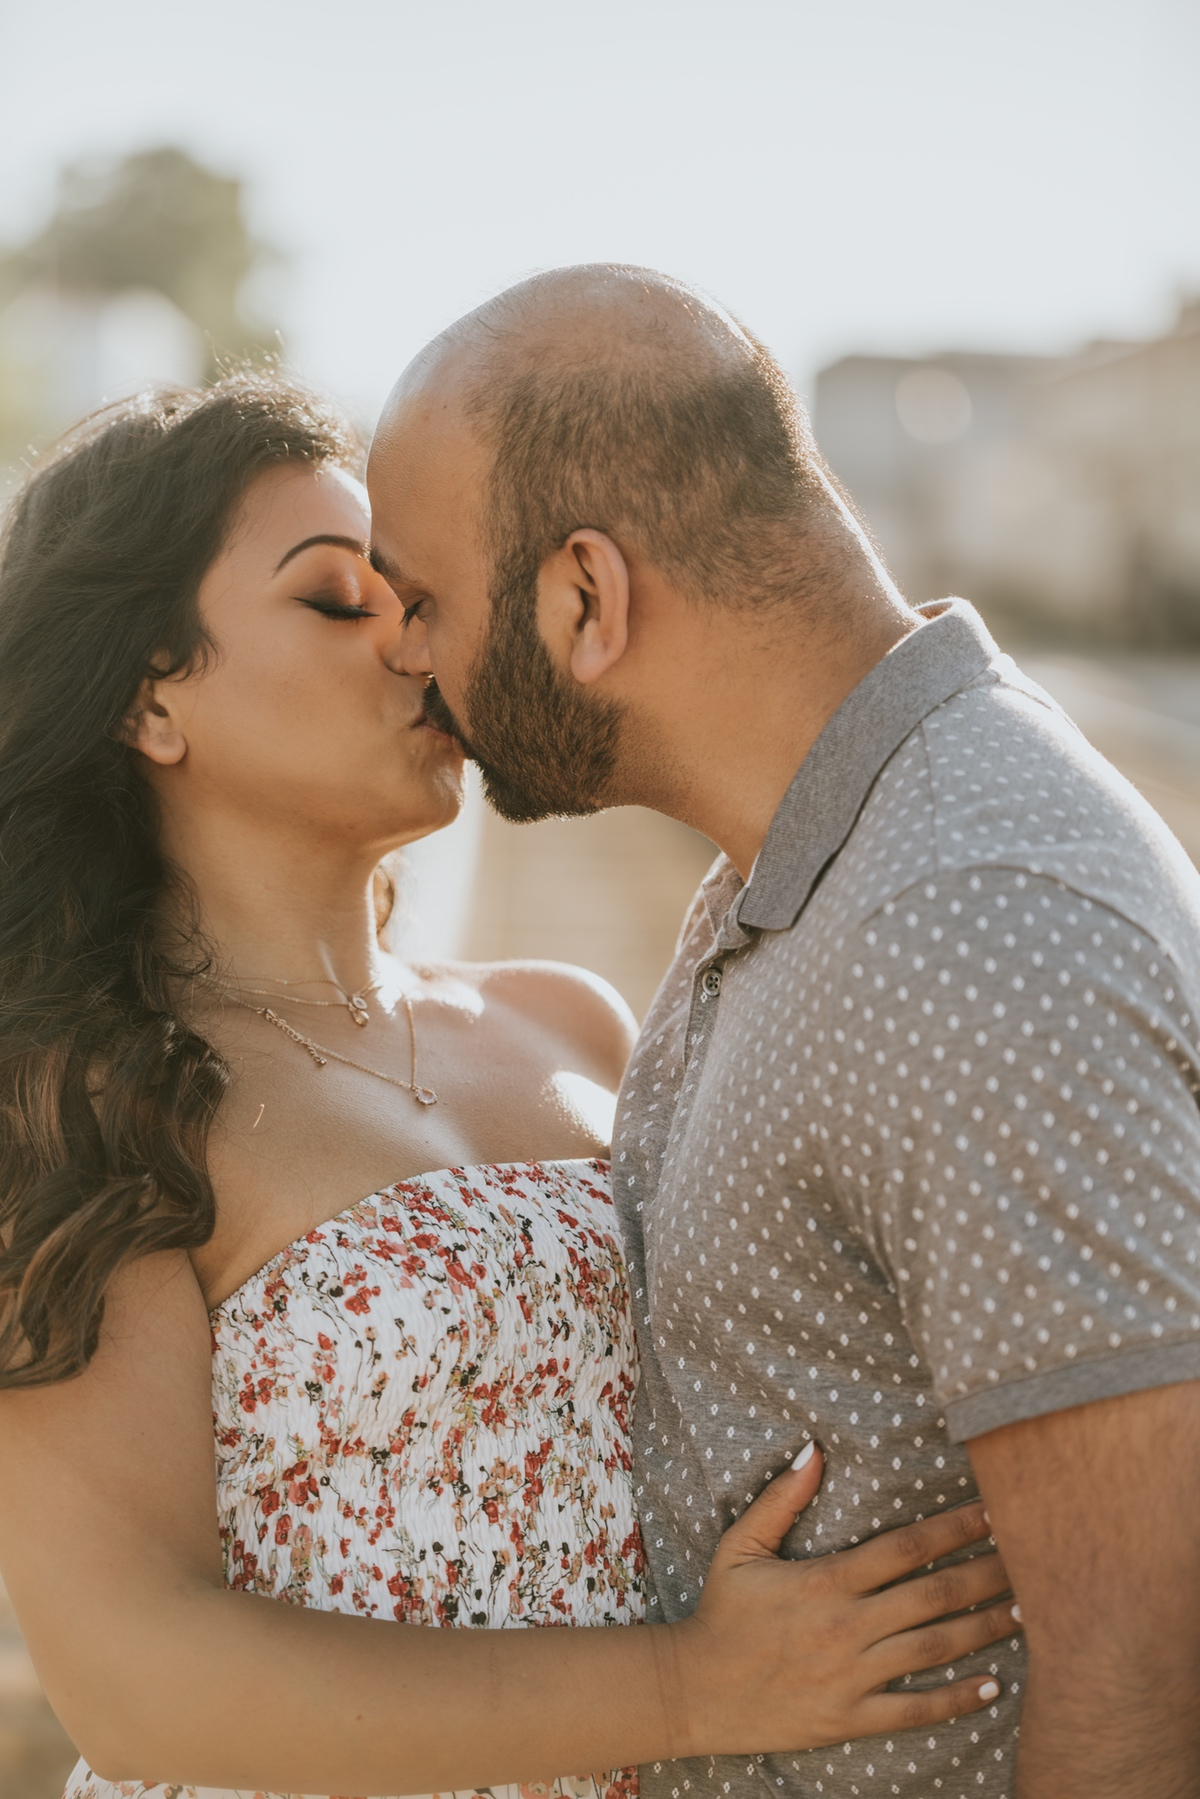 Le Cape Weddings - Engagement Session in Chicago - Brinjal-9.jpg